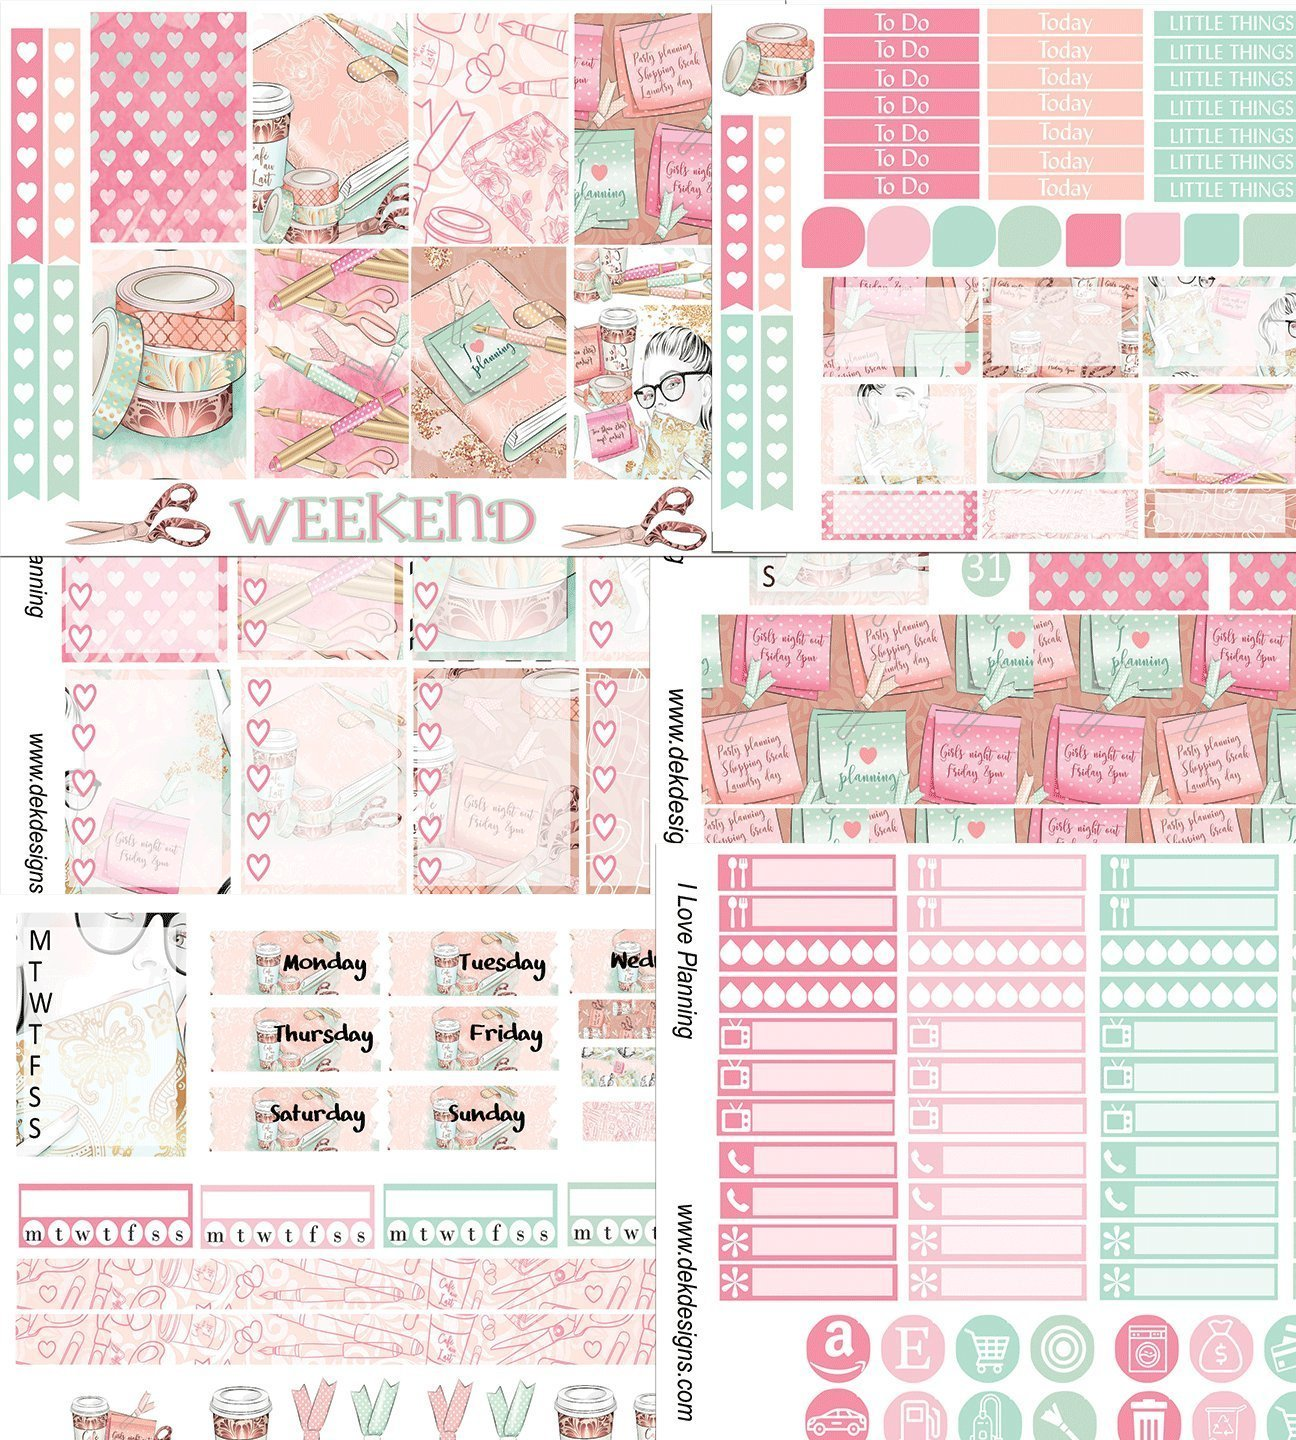 I Love Planning, Weekly sticker kit. 6 sheets on matte sticker paper. Choose your size from Erin Condren to Happy Planner. Kiss cut, just peel and stick.